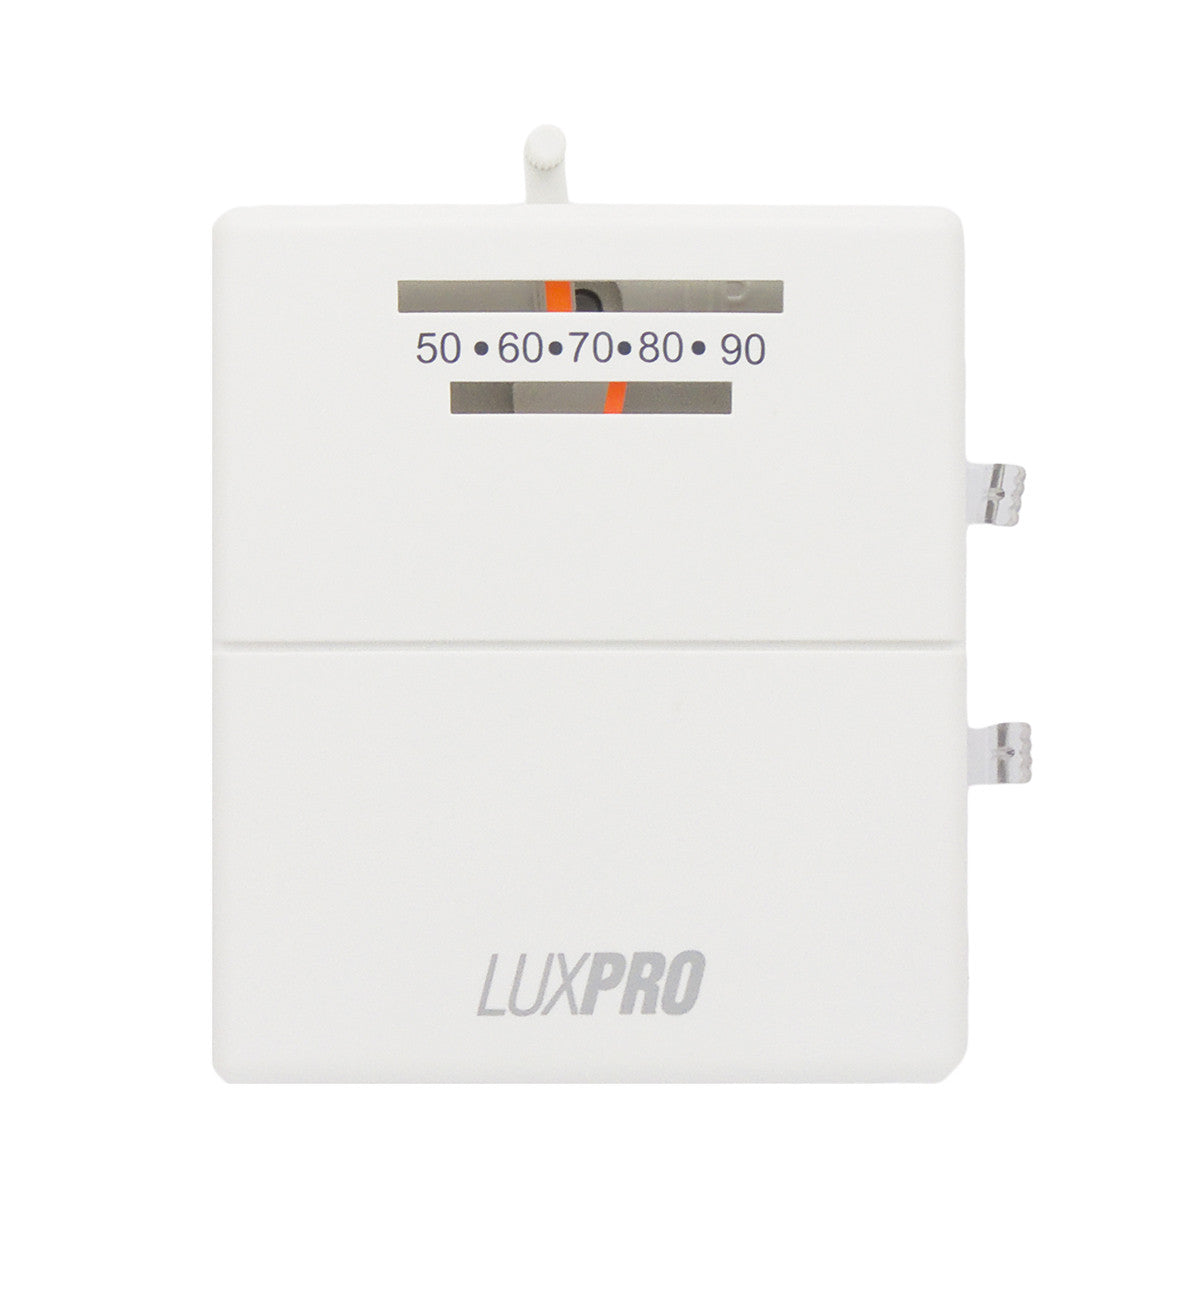 luxpro psm40sa mechanical snap action 2 wire heat only thermostat rh ambientfloorheat com LuxPro PSD111 Problem LuxPro Thermostat Troubleshooting